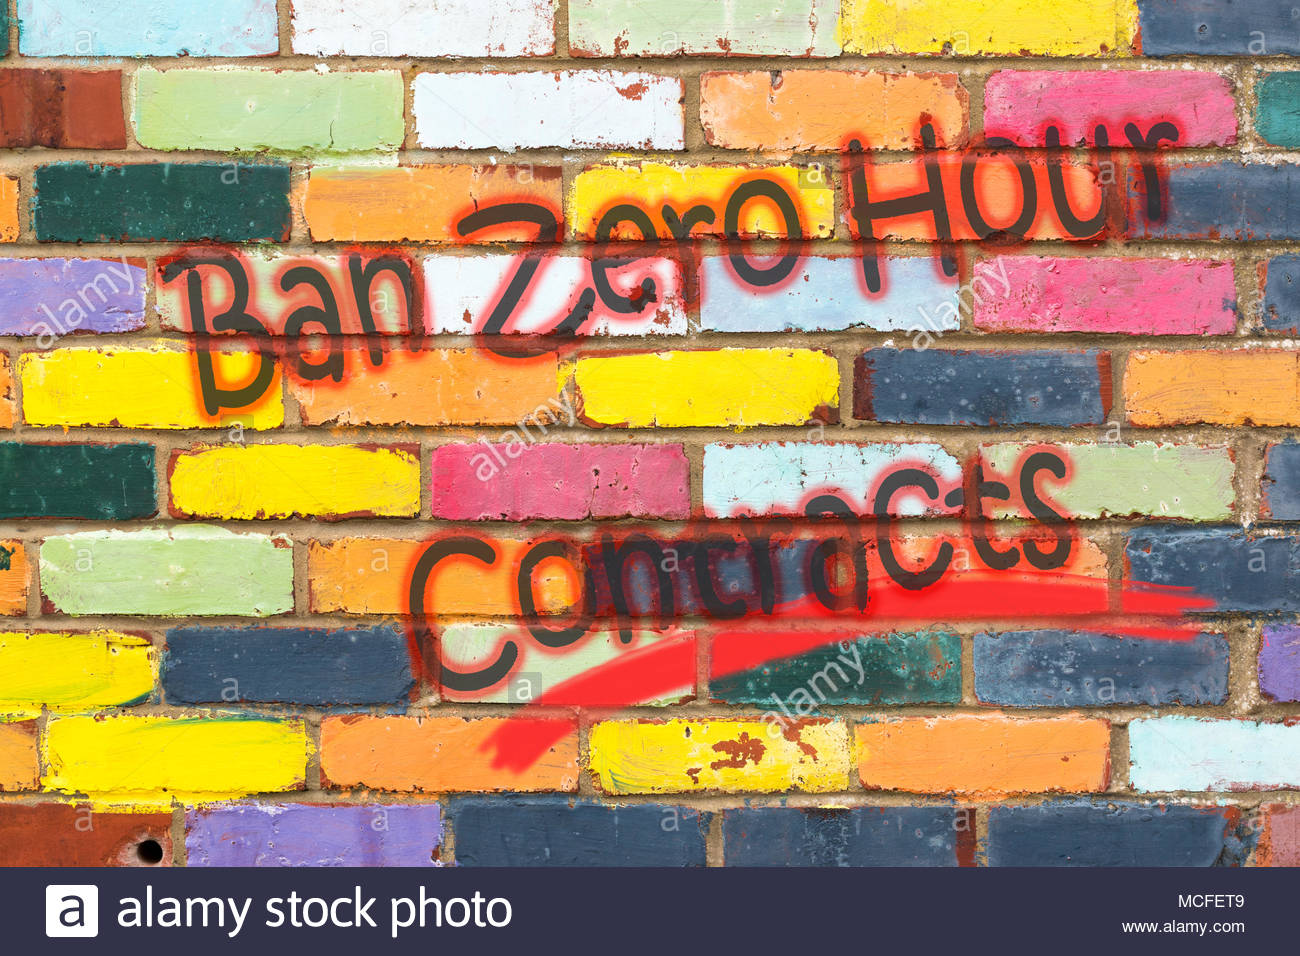 Looking at a very colourful brickwall with the wording Ban Zero Hour Contracts. Dorset, England - Stock Image